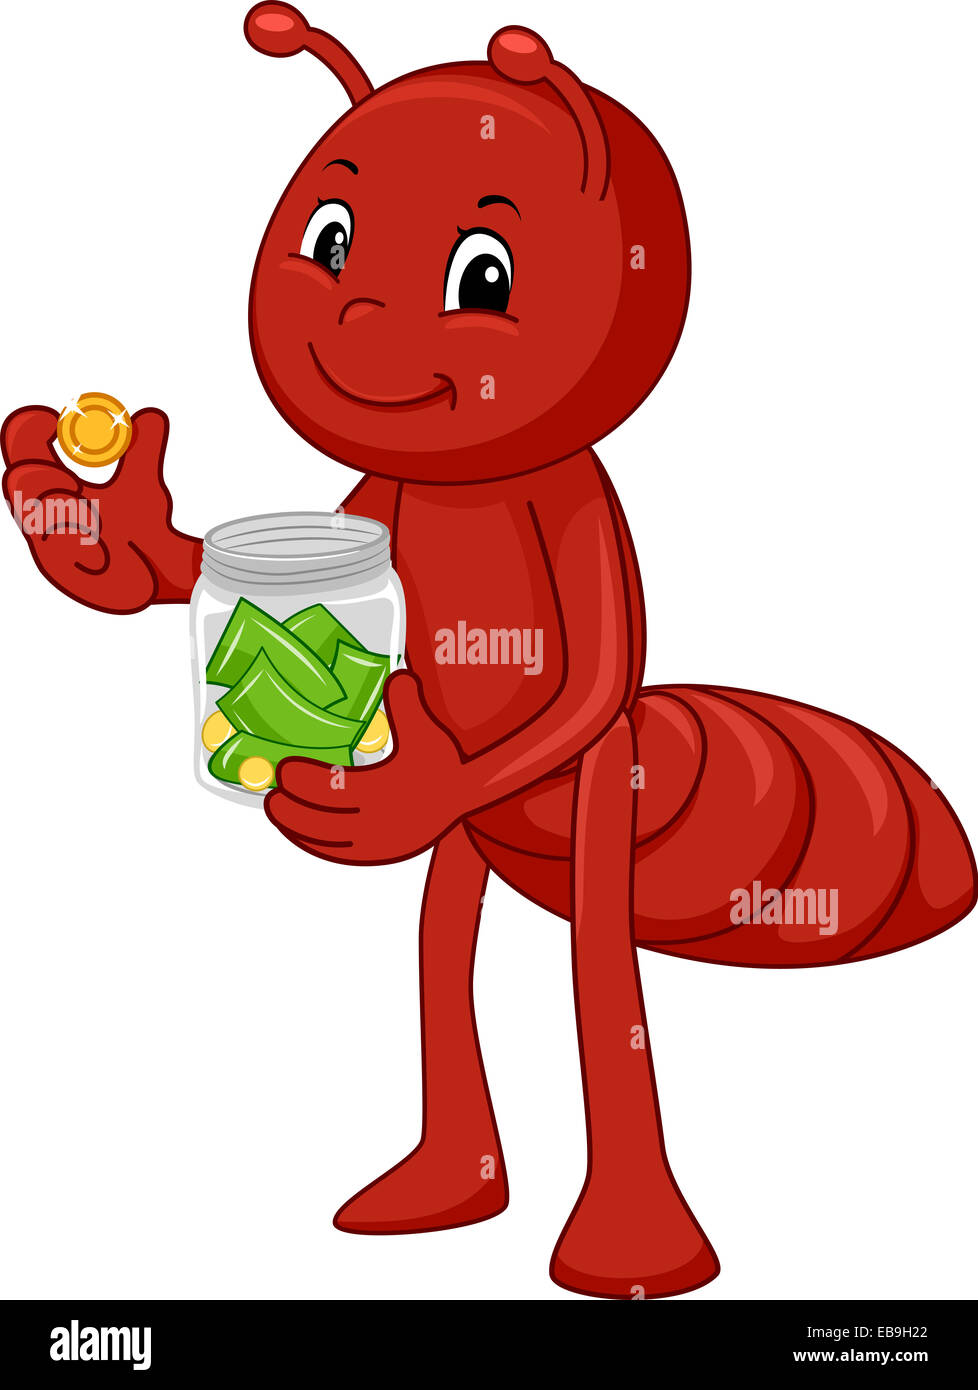 Illustration Featuring an Ant Storing Money in a Glass Jar - Stock Image